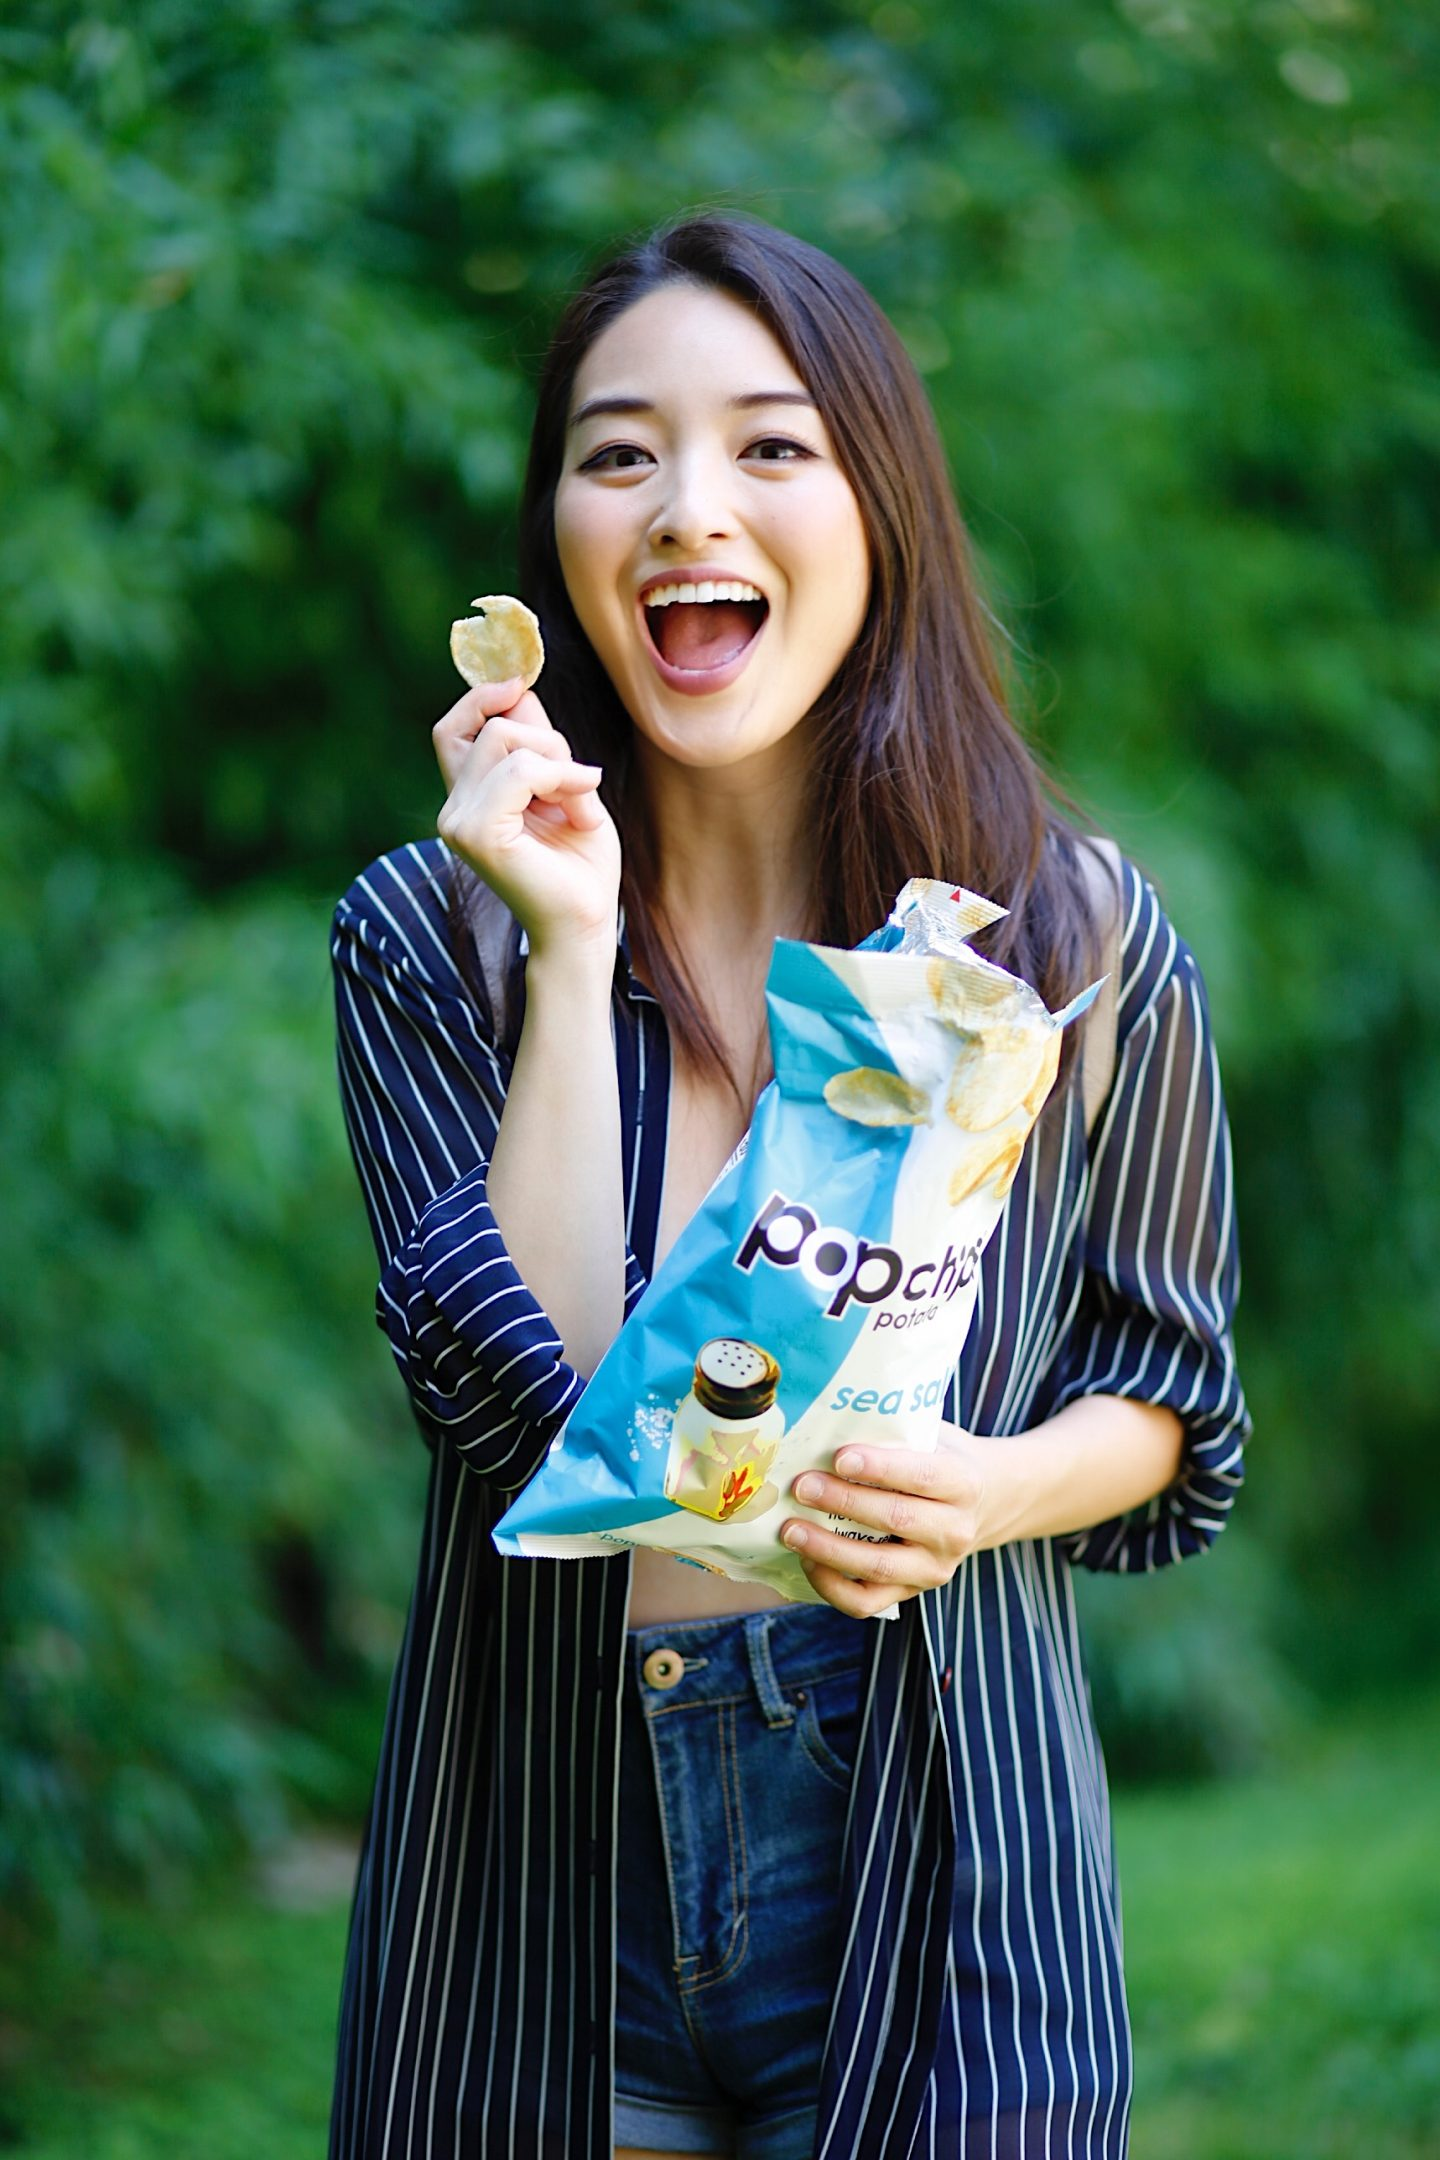 popchips sea salt